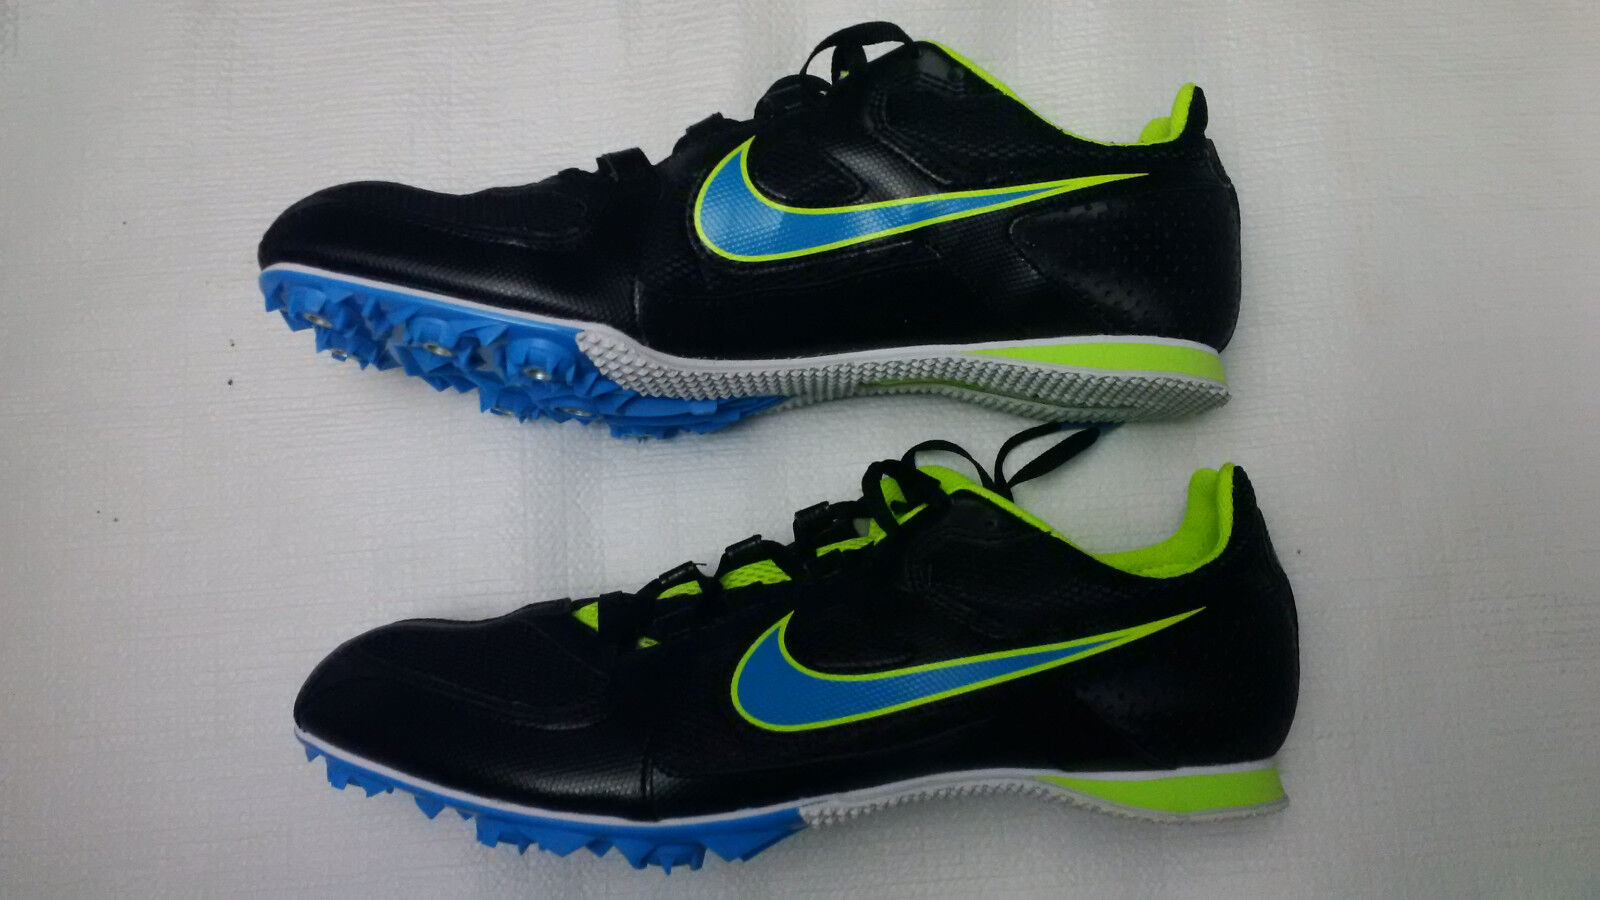 Nike Zoom Rival MD 6 468648-041 Men's Running Shoes- Style 468648-041 6 5710f1